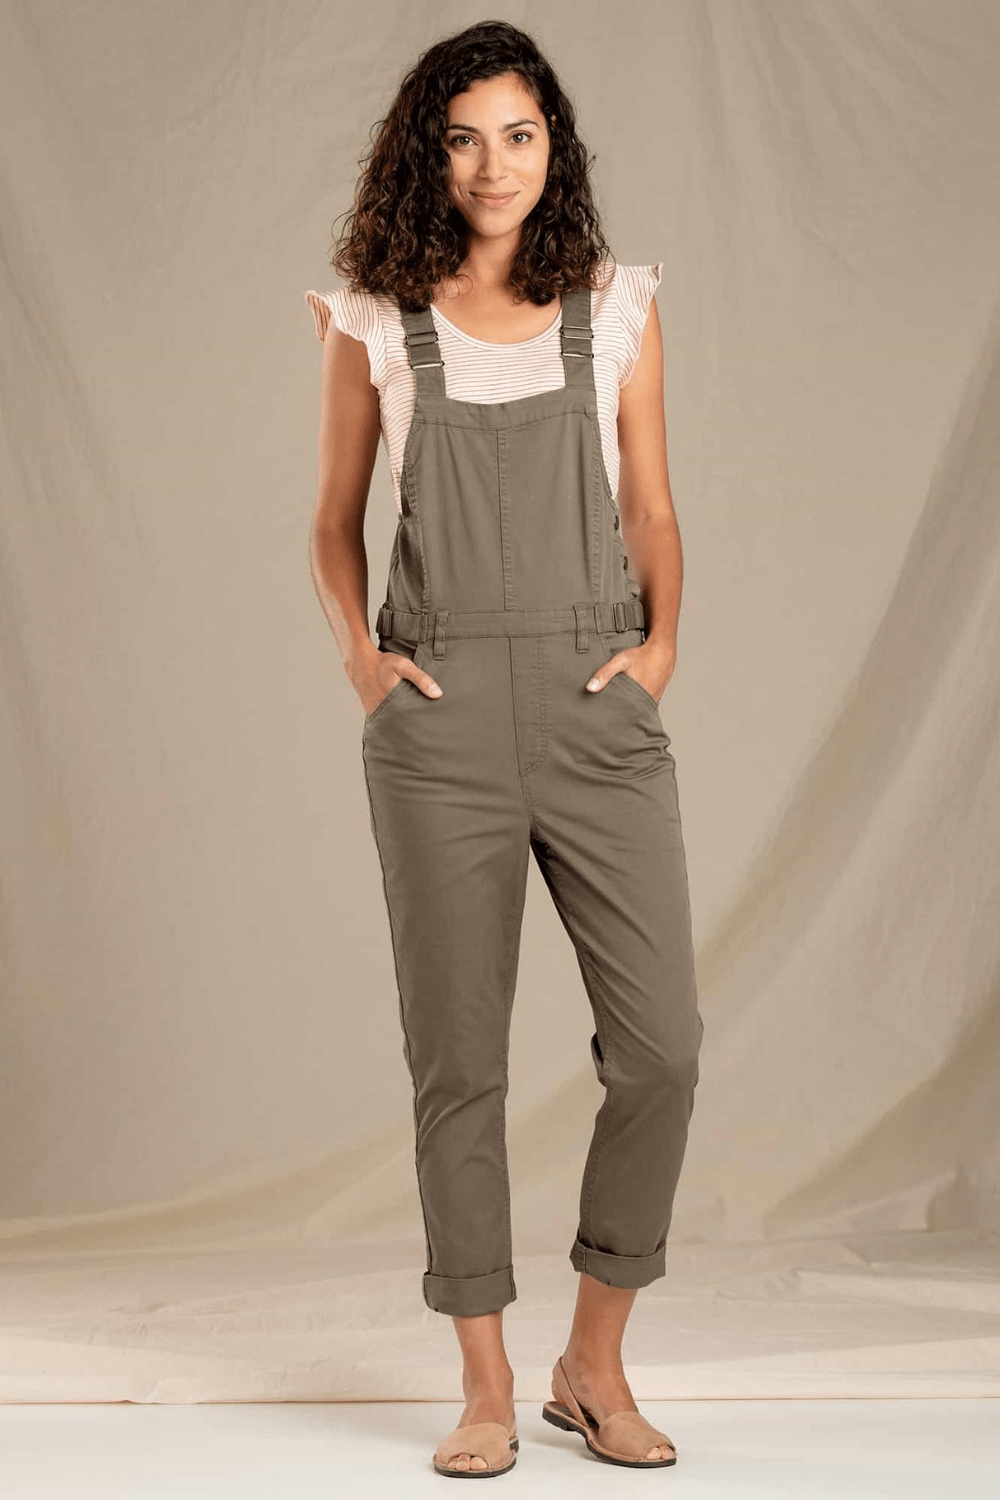 Toad & Co. Women's Pants Touchstone Overalls • Falcon Brown